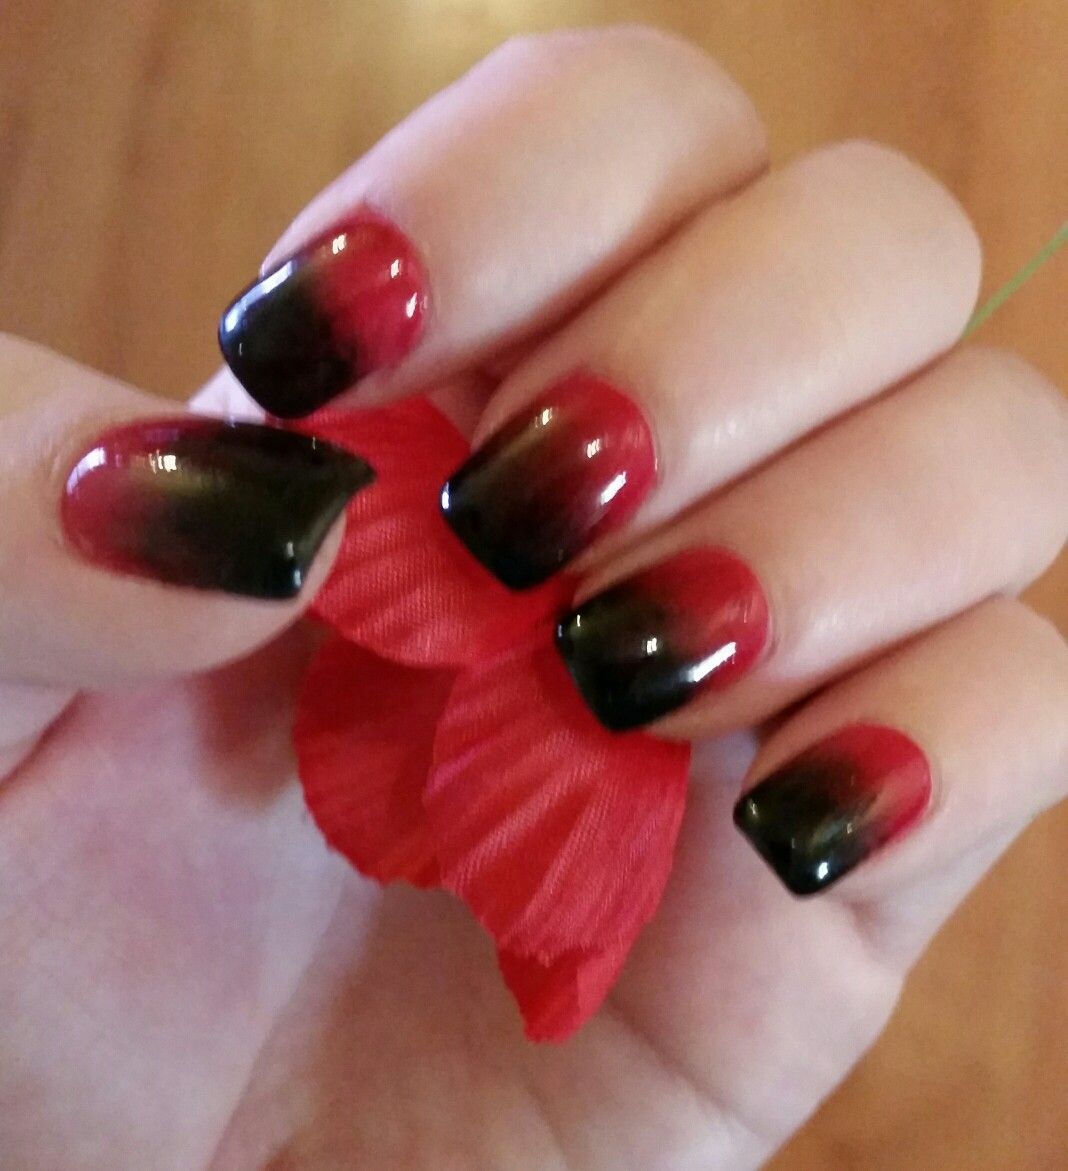 Red and black ombre sns nails, luxury nails and spa Mawson lakes ...